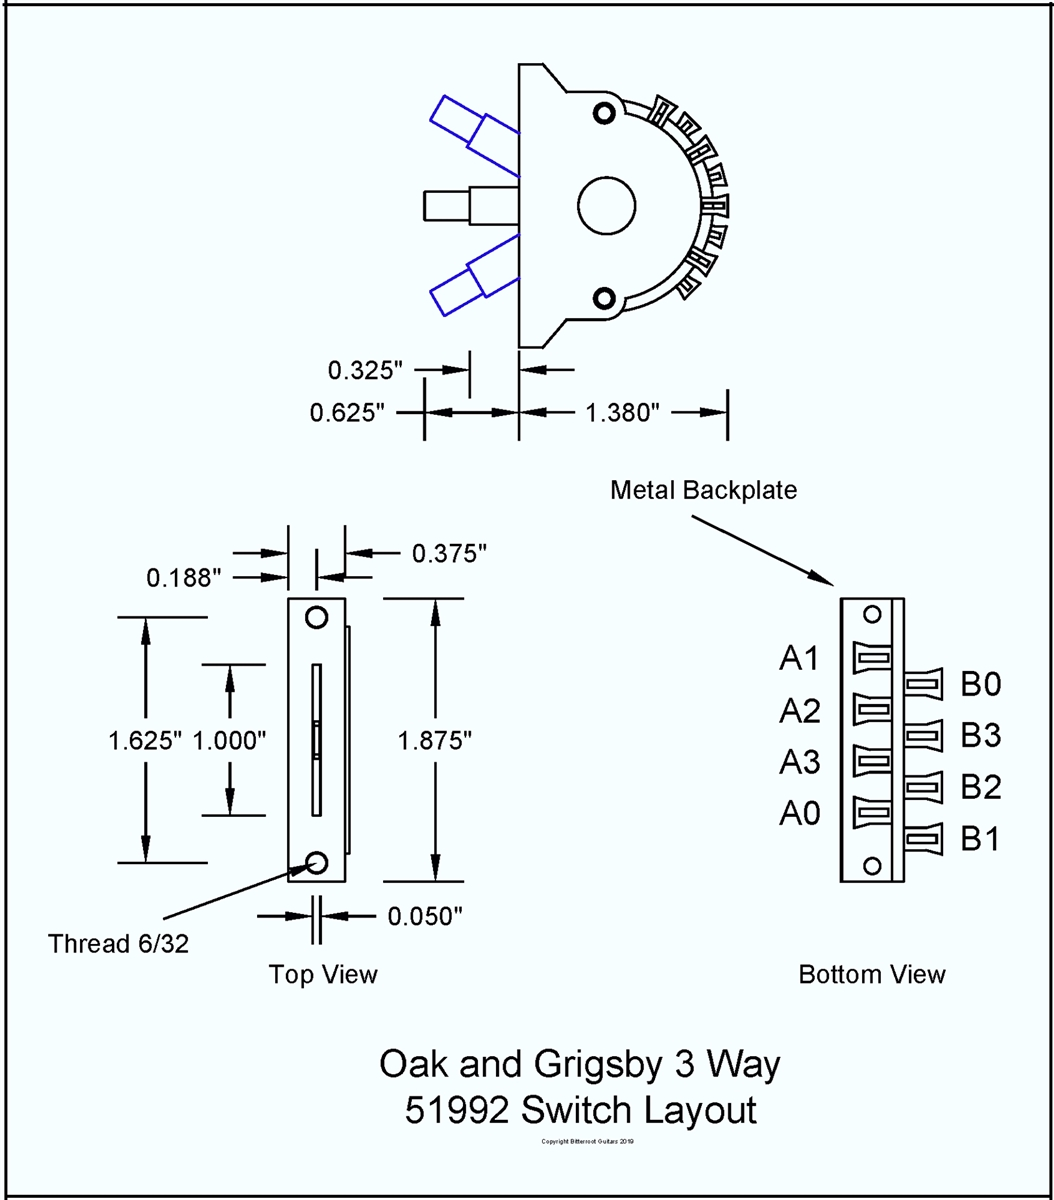 Switch 3 Way Oak Grigsby no on